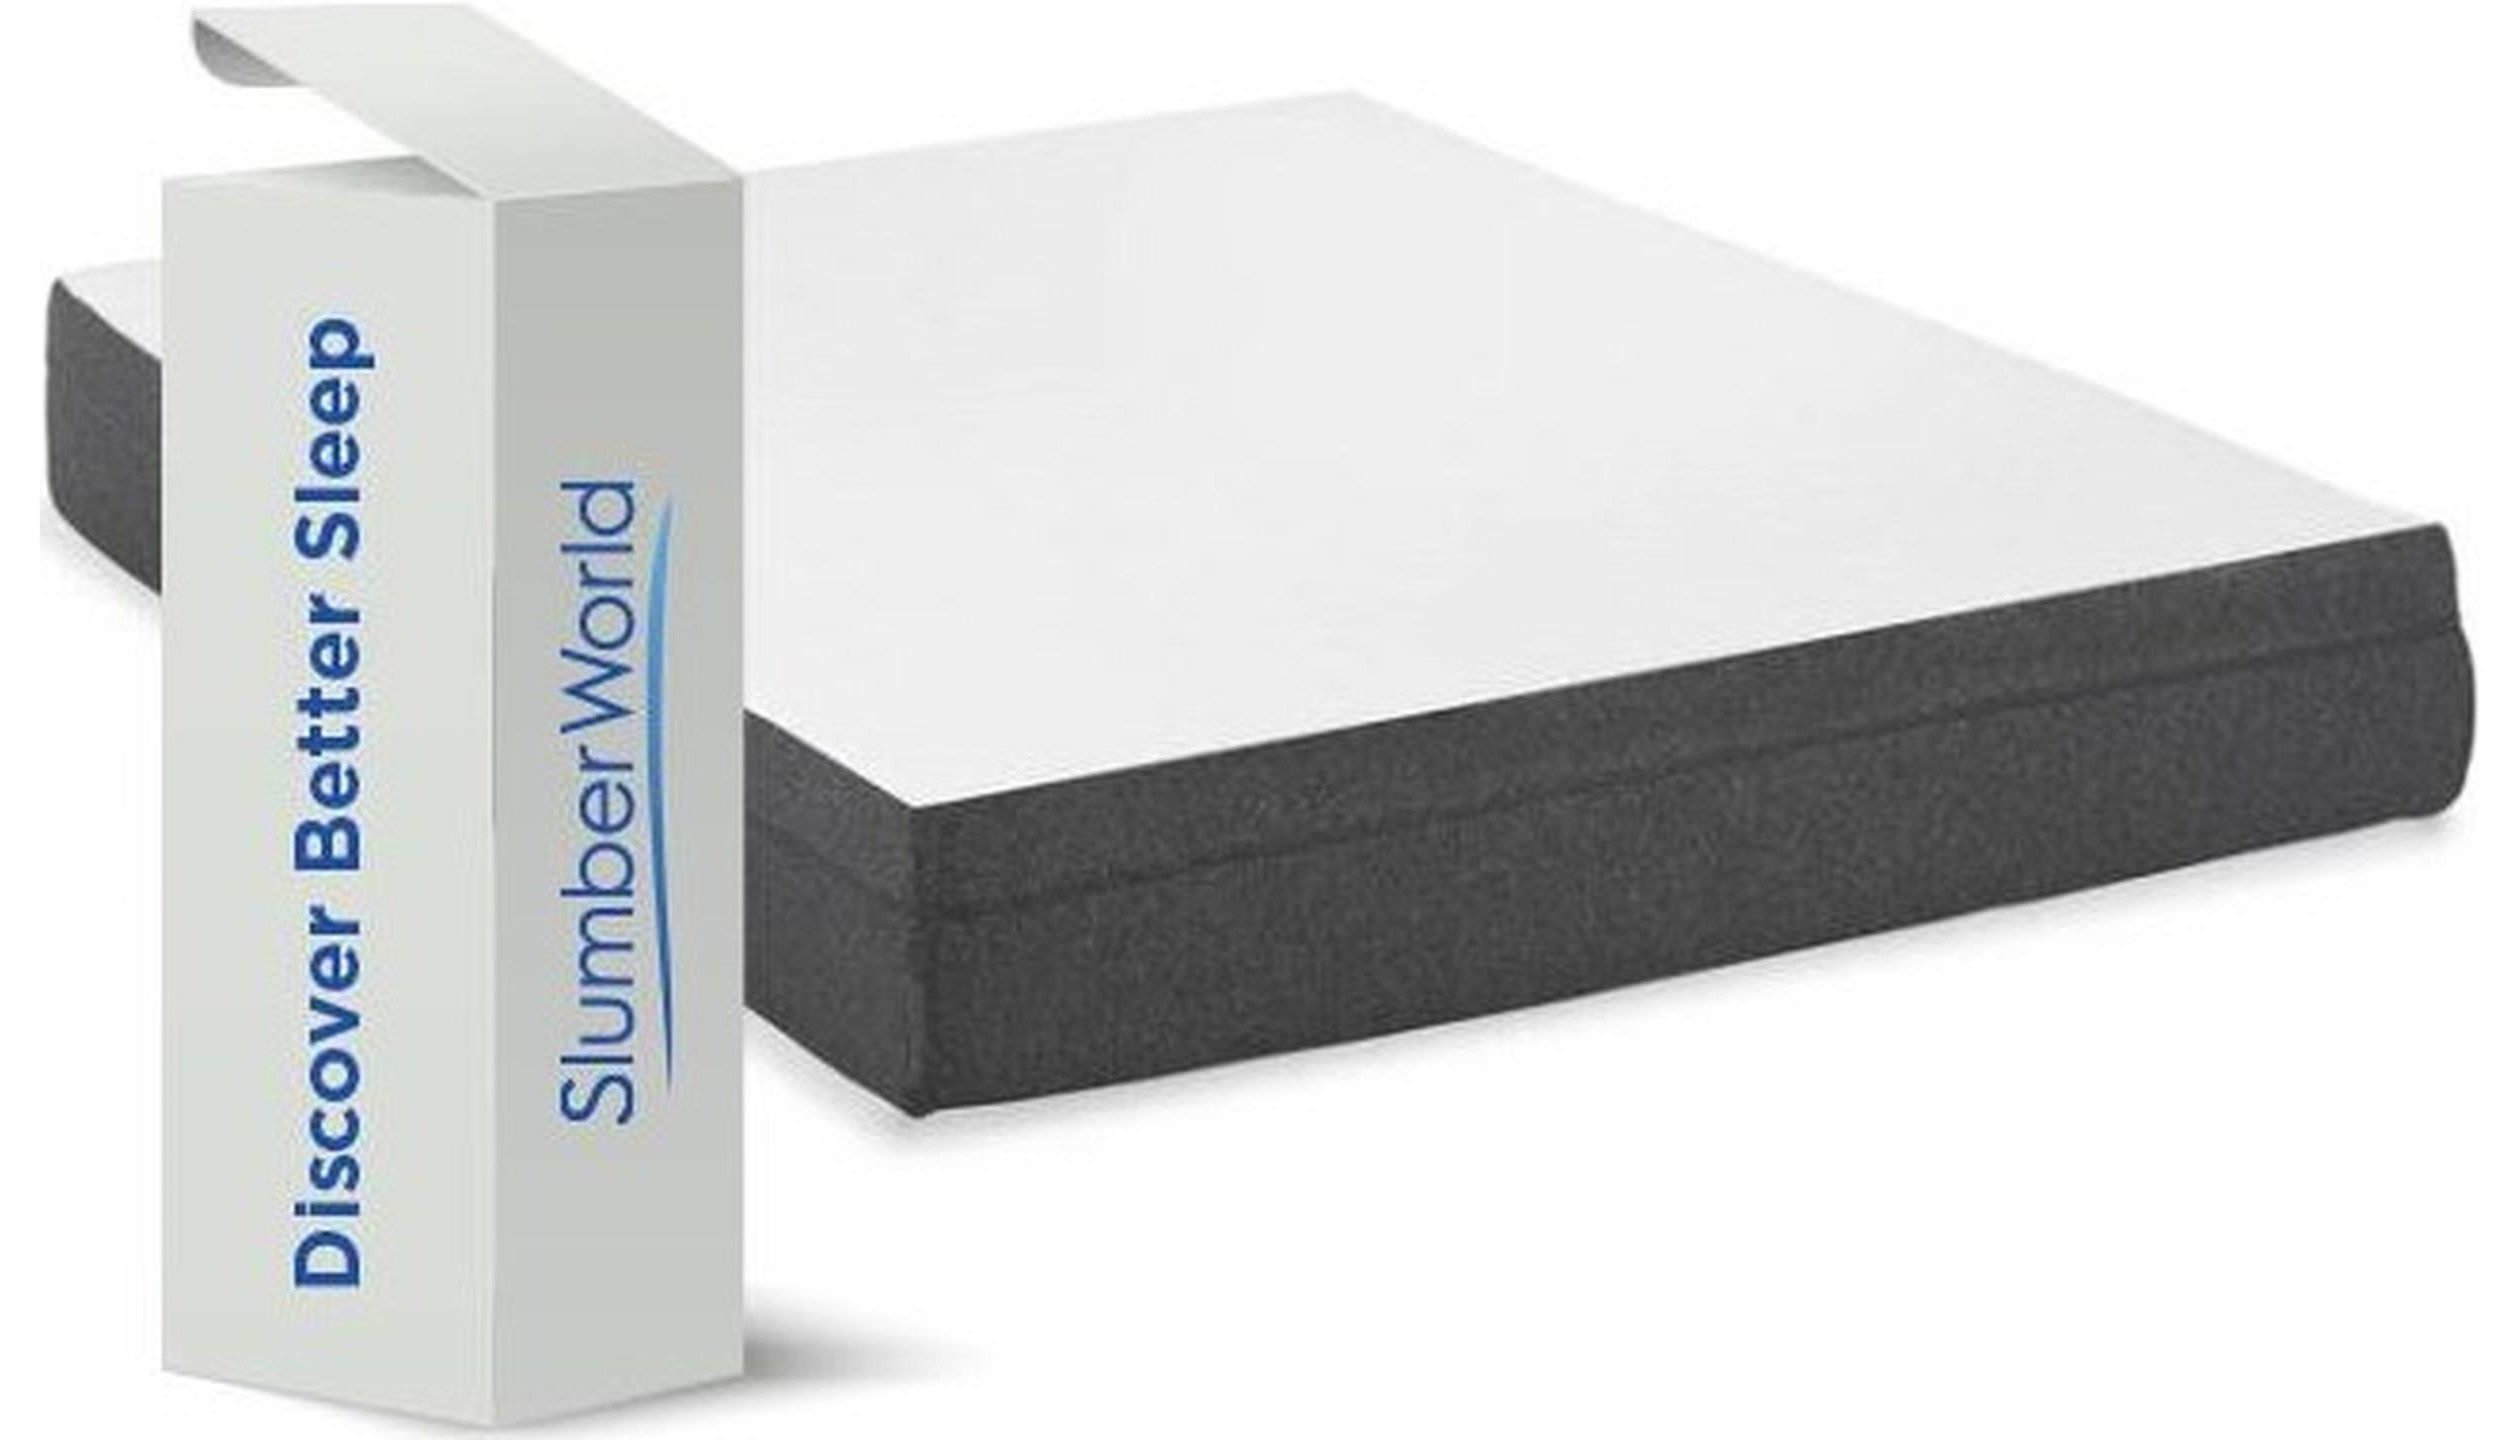 SB10 Hybrid Reactive Mattress by South Bay International at Red Knot